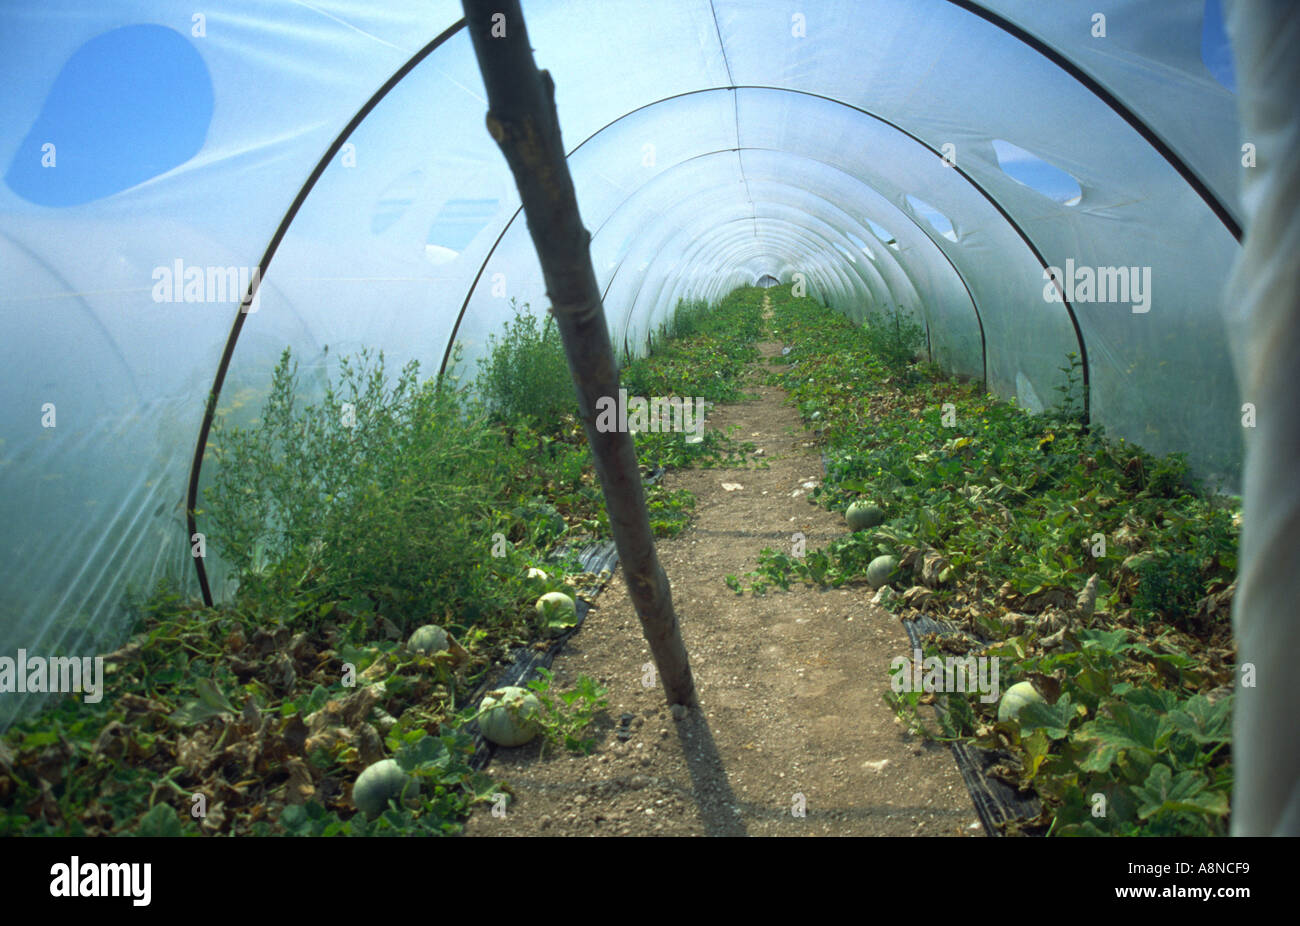 Inside a Greenhouse for Vegetables Sicily Italy Stock Photo